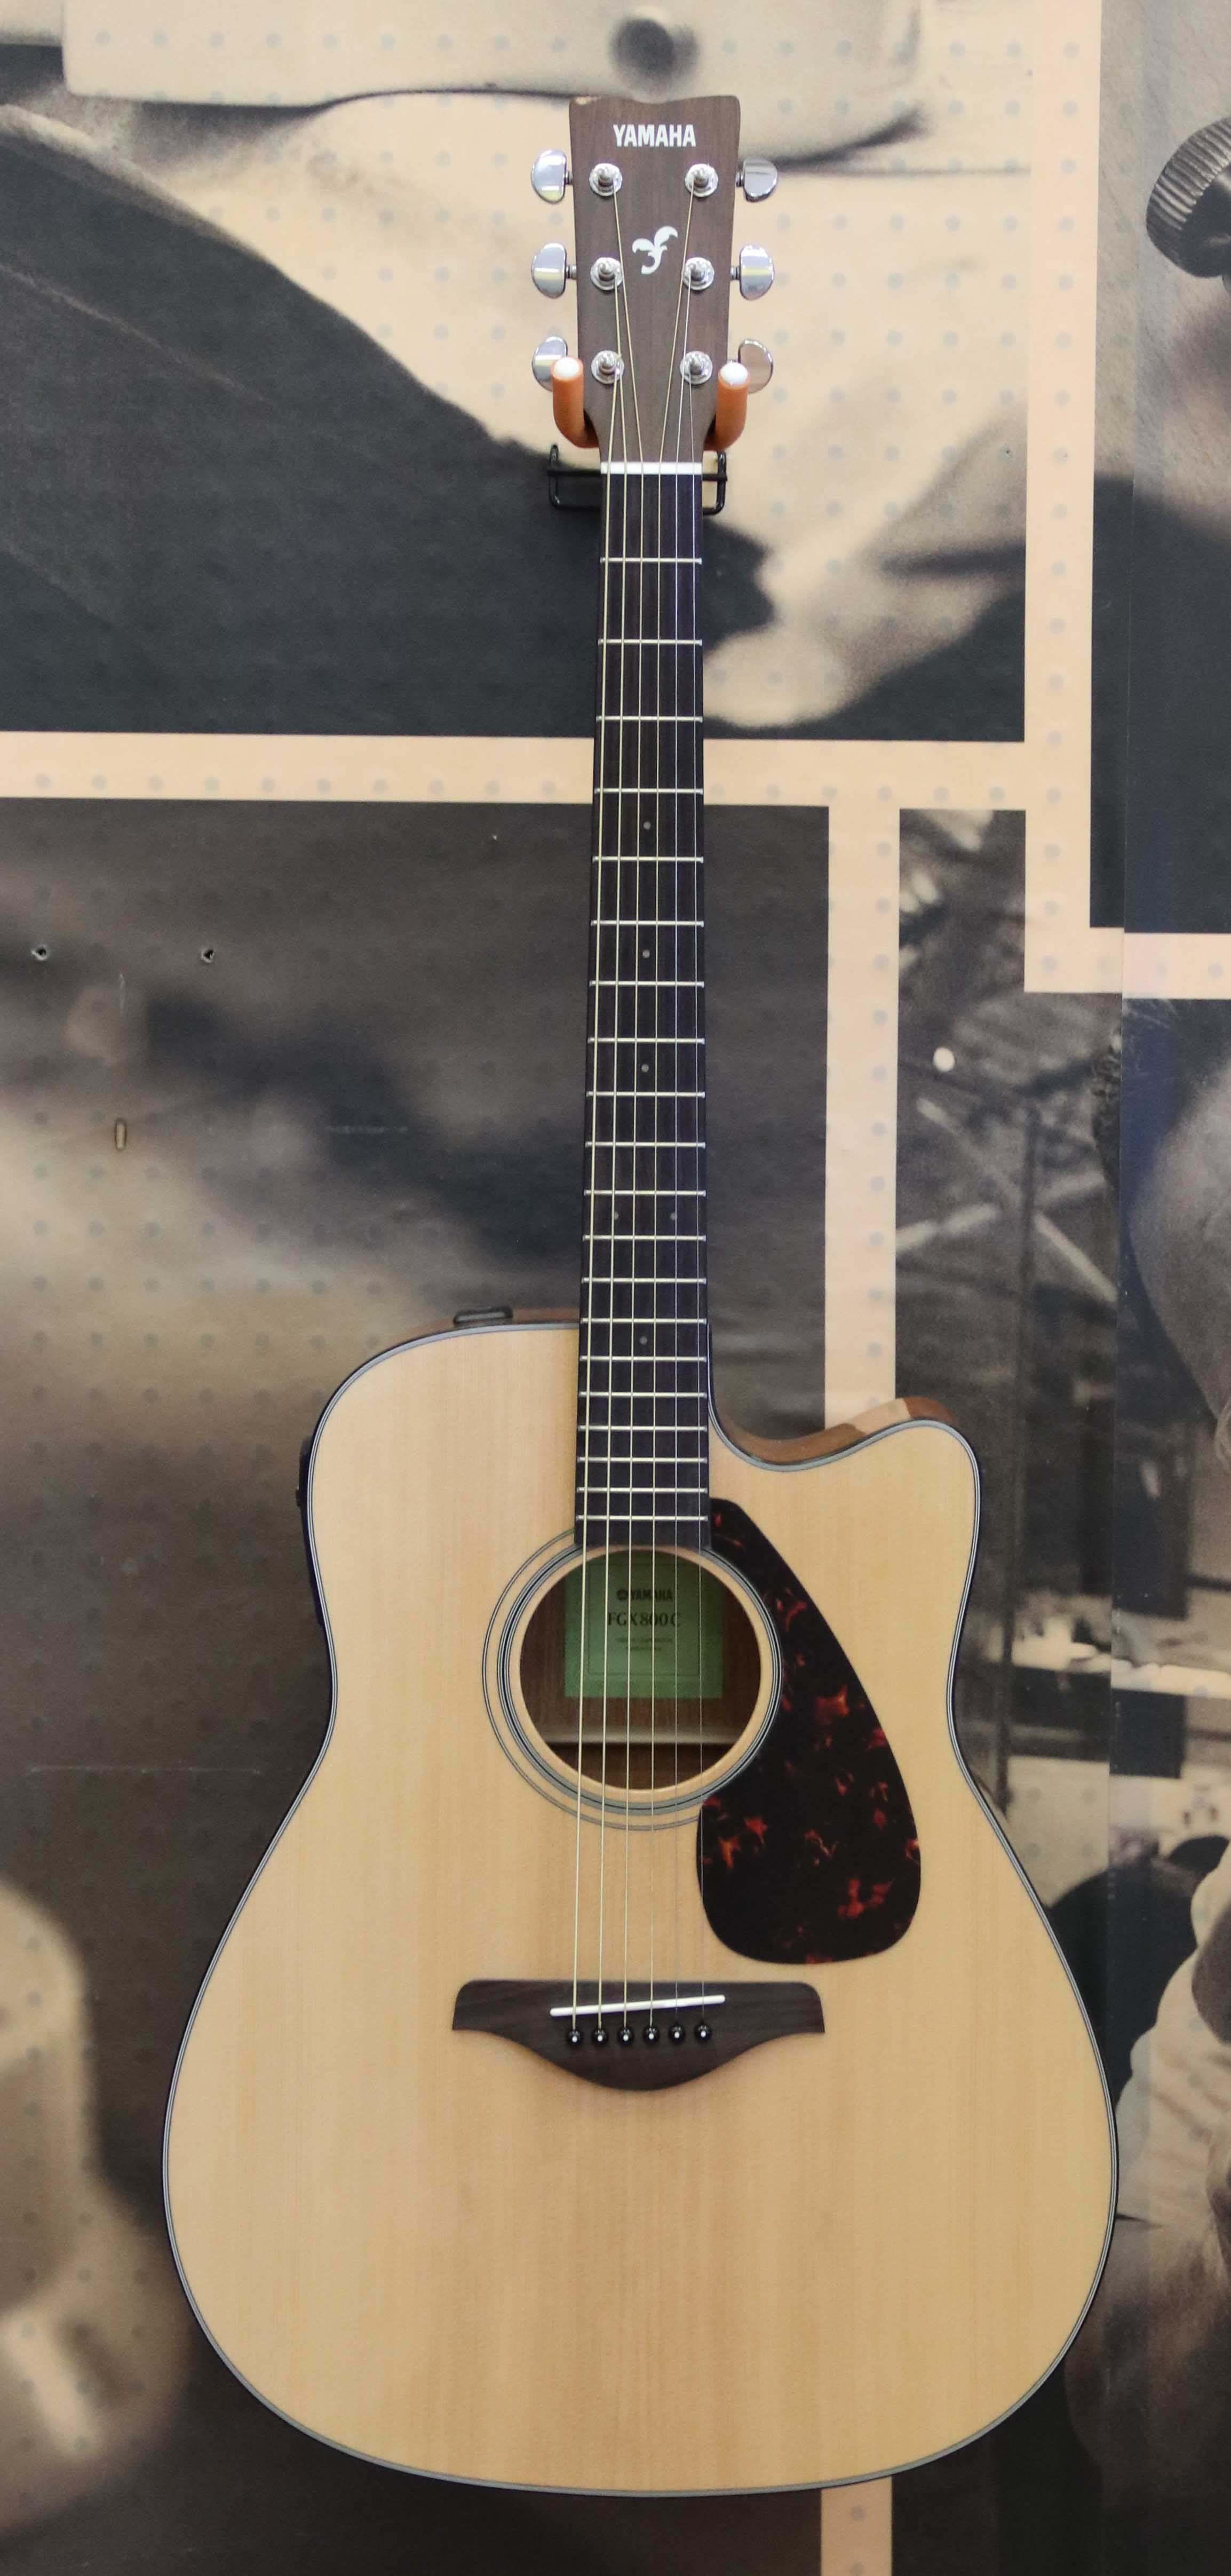 yamaha fgx800c solid top folk acoustic electric guitar natural 692624549265 ebay. Black Bedroom Furniture Sets. Home Design Ideas